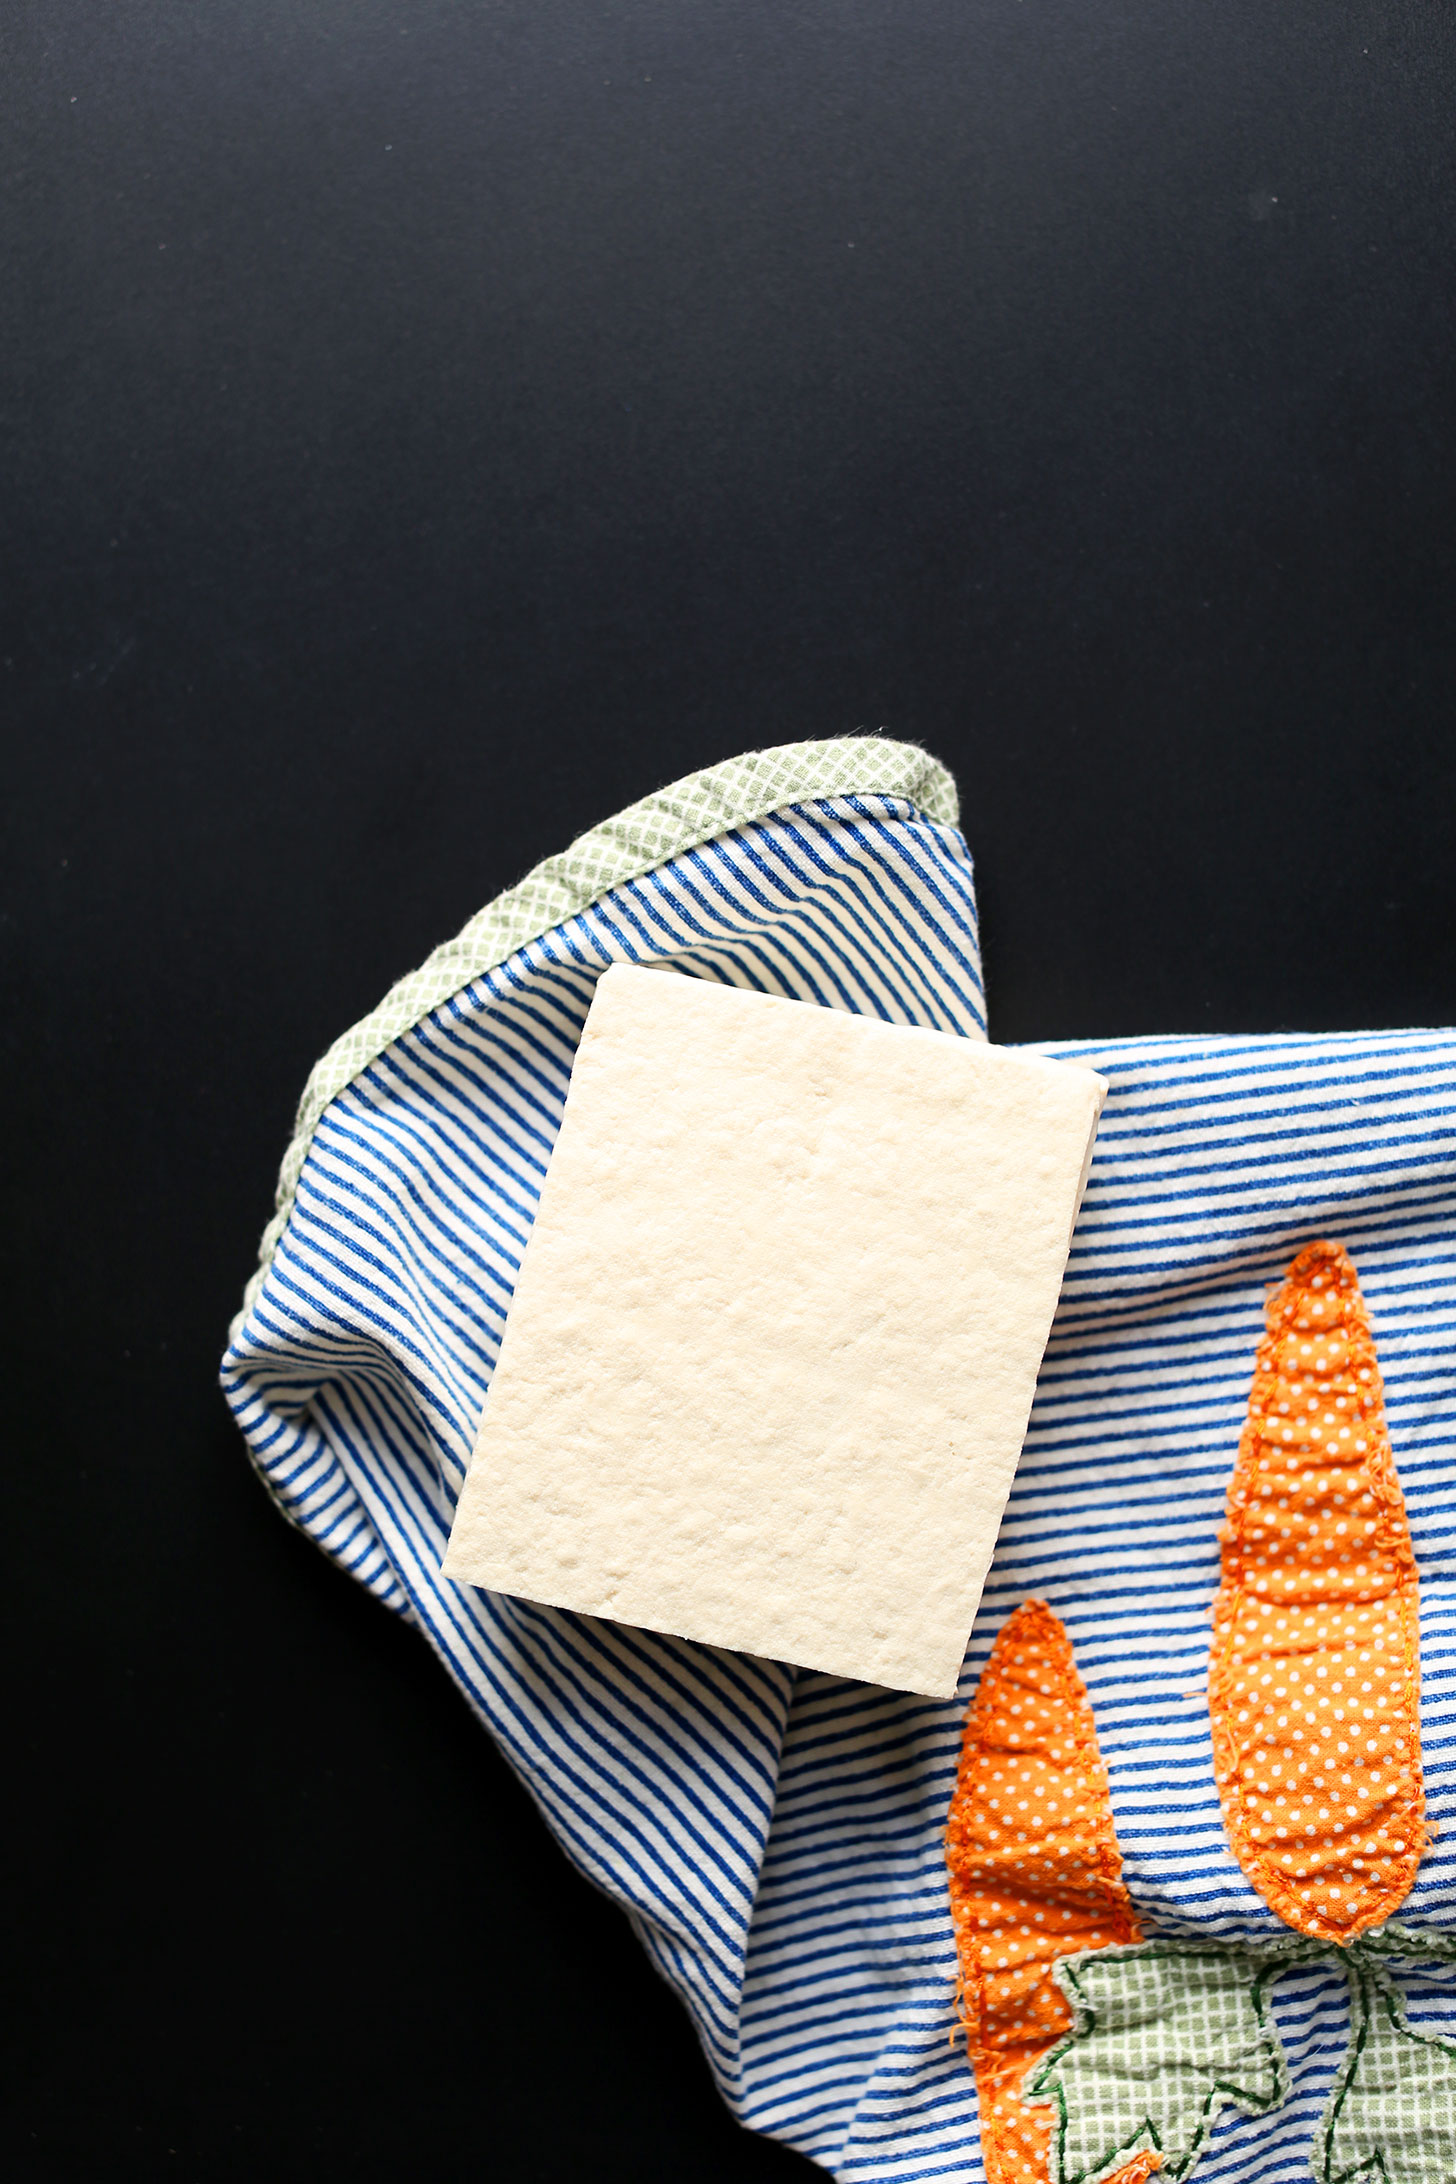 overhead image of a block of tofu being dried on a blue striped towel